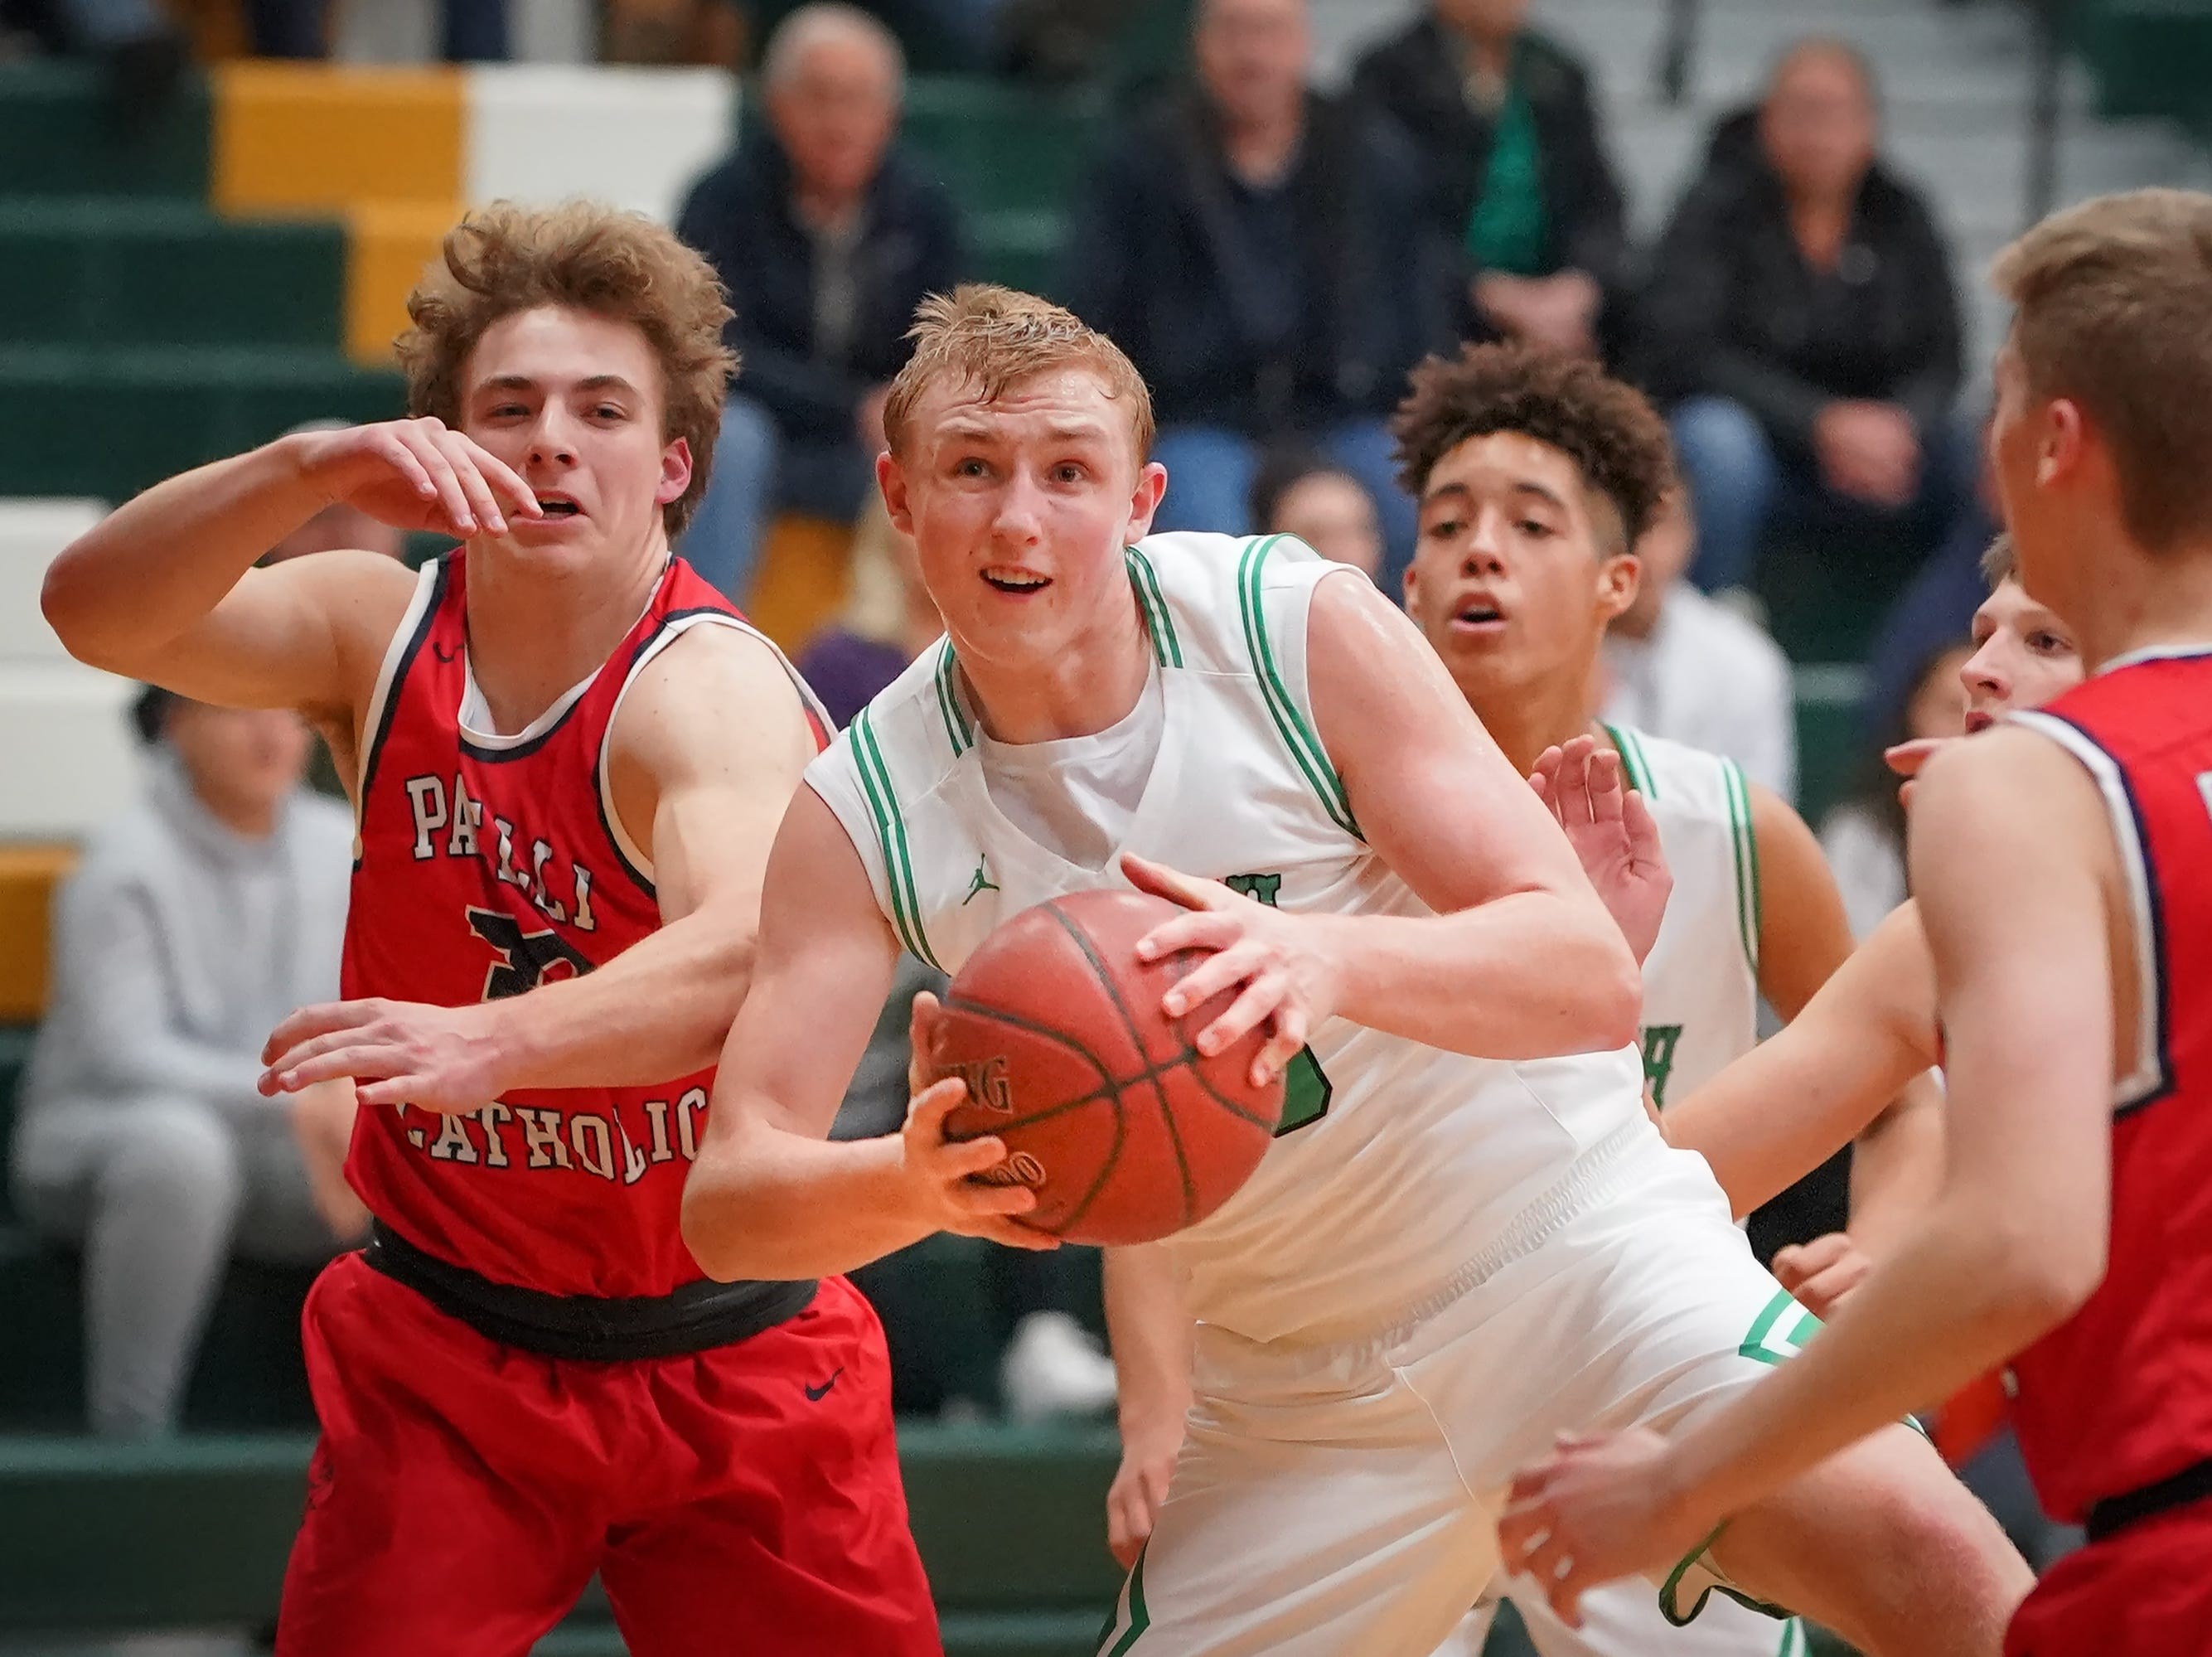 Matthew Berger (30) of Oshkosh North tries to move the ball past Nick Hartman (24) of Pacelli. The Oshkosh North Spartans hosted the Stevens Point Pacelli Catholic Cardinals in the Friday night game of the Fox River Brewing Thanksgiving Classic Tournament.